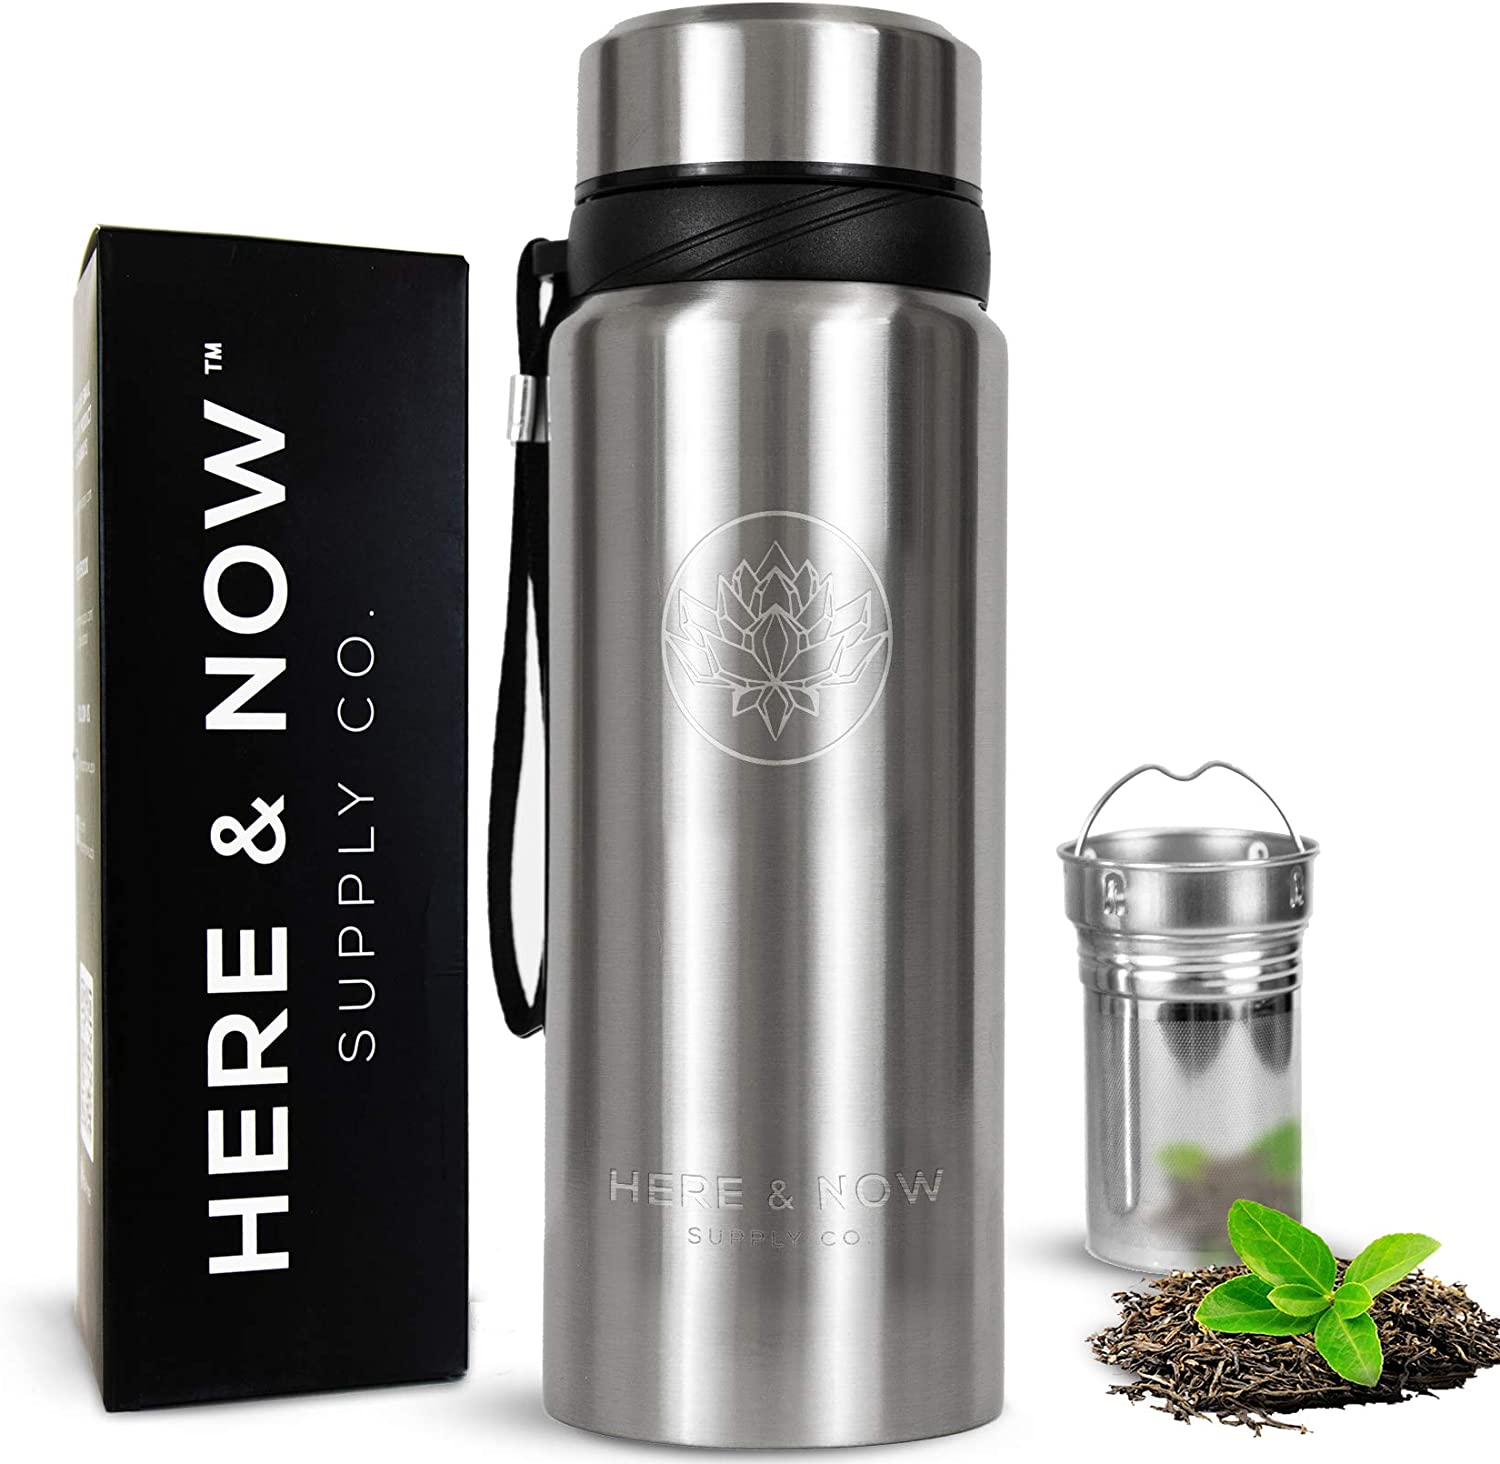 25 oz Multi-Purpose Travel Mug and Tumbler   Tea Infuser Water Bottle   Fruit Infused Flask   Hot & Cold Double Wall Stainless Steel Coffee Thermos   by Here & Now Supply Co. (Cosmic Silver)